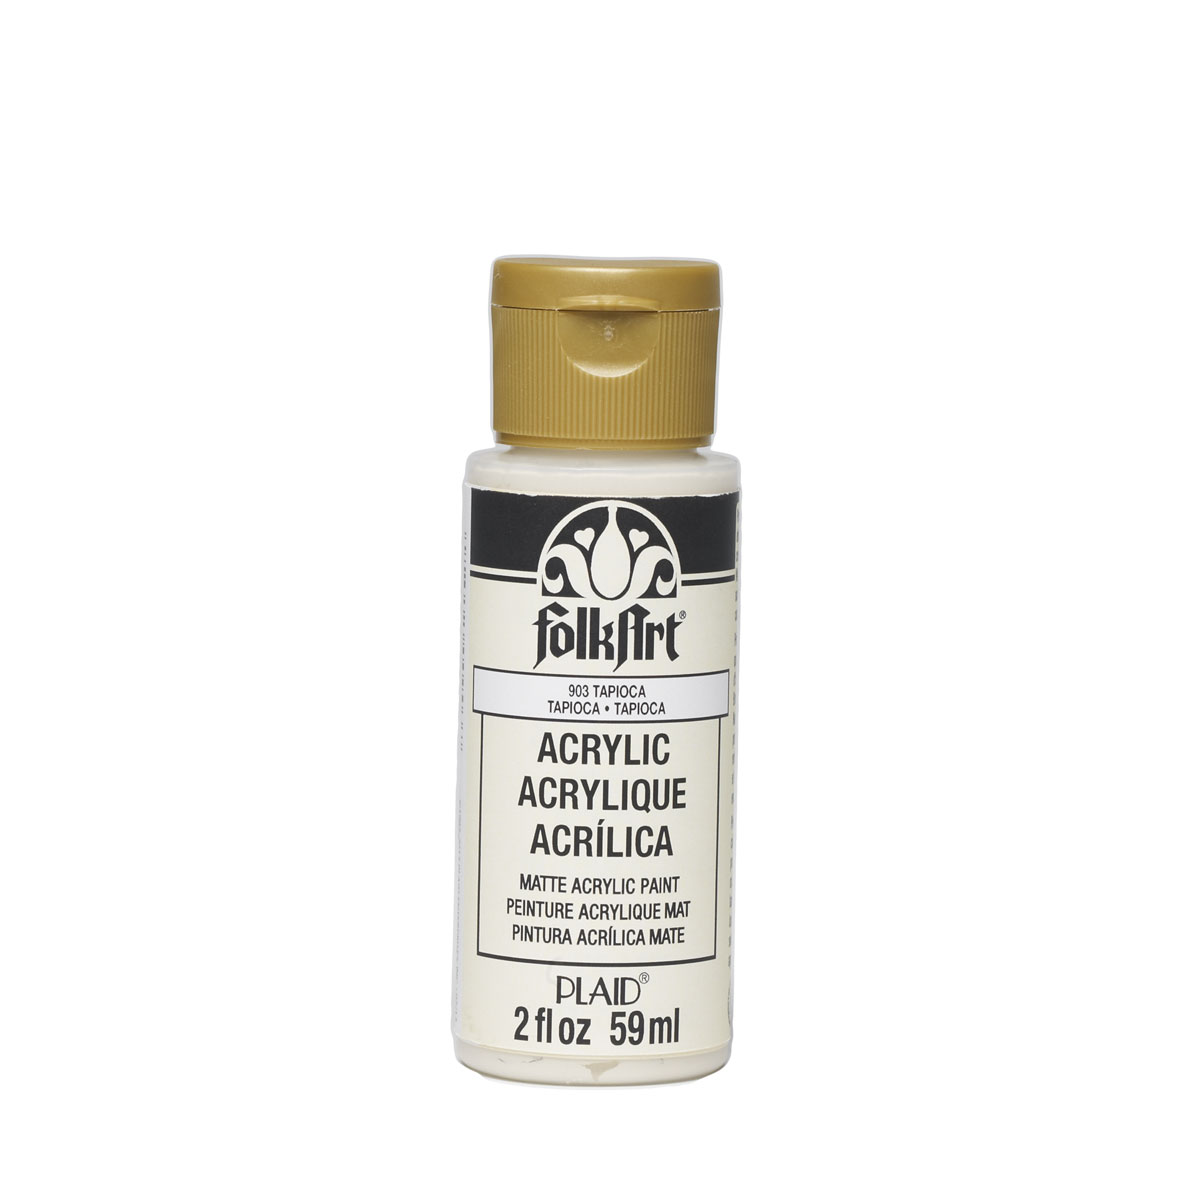 FolkArt ® Acrylic Colors - Tapioca, 2 oz. - 903